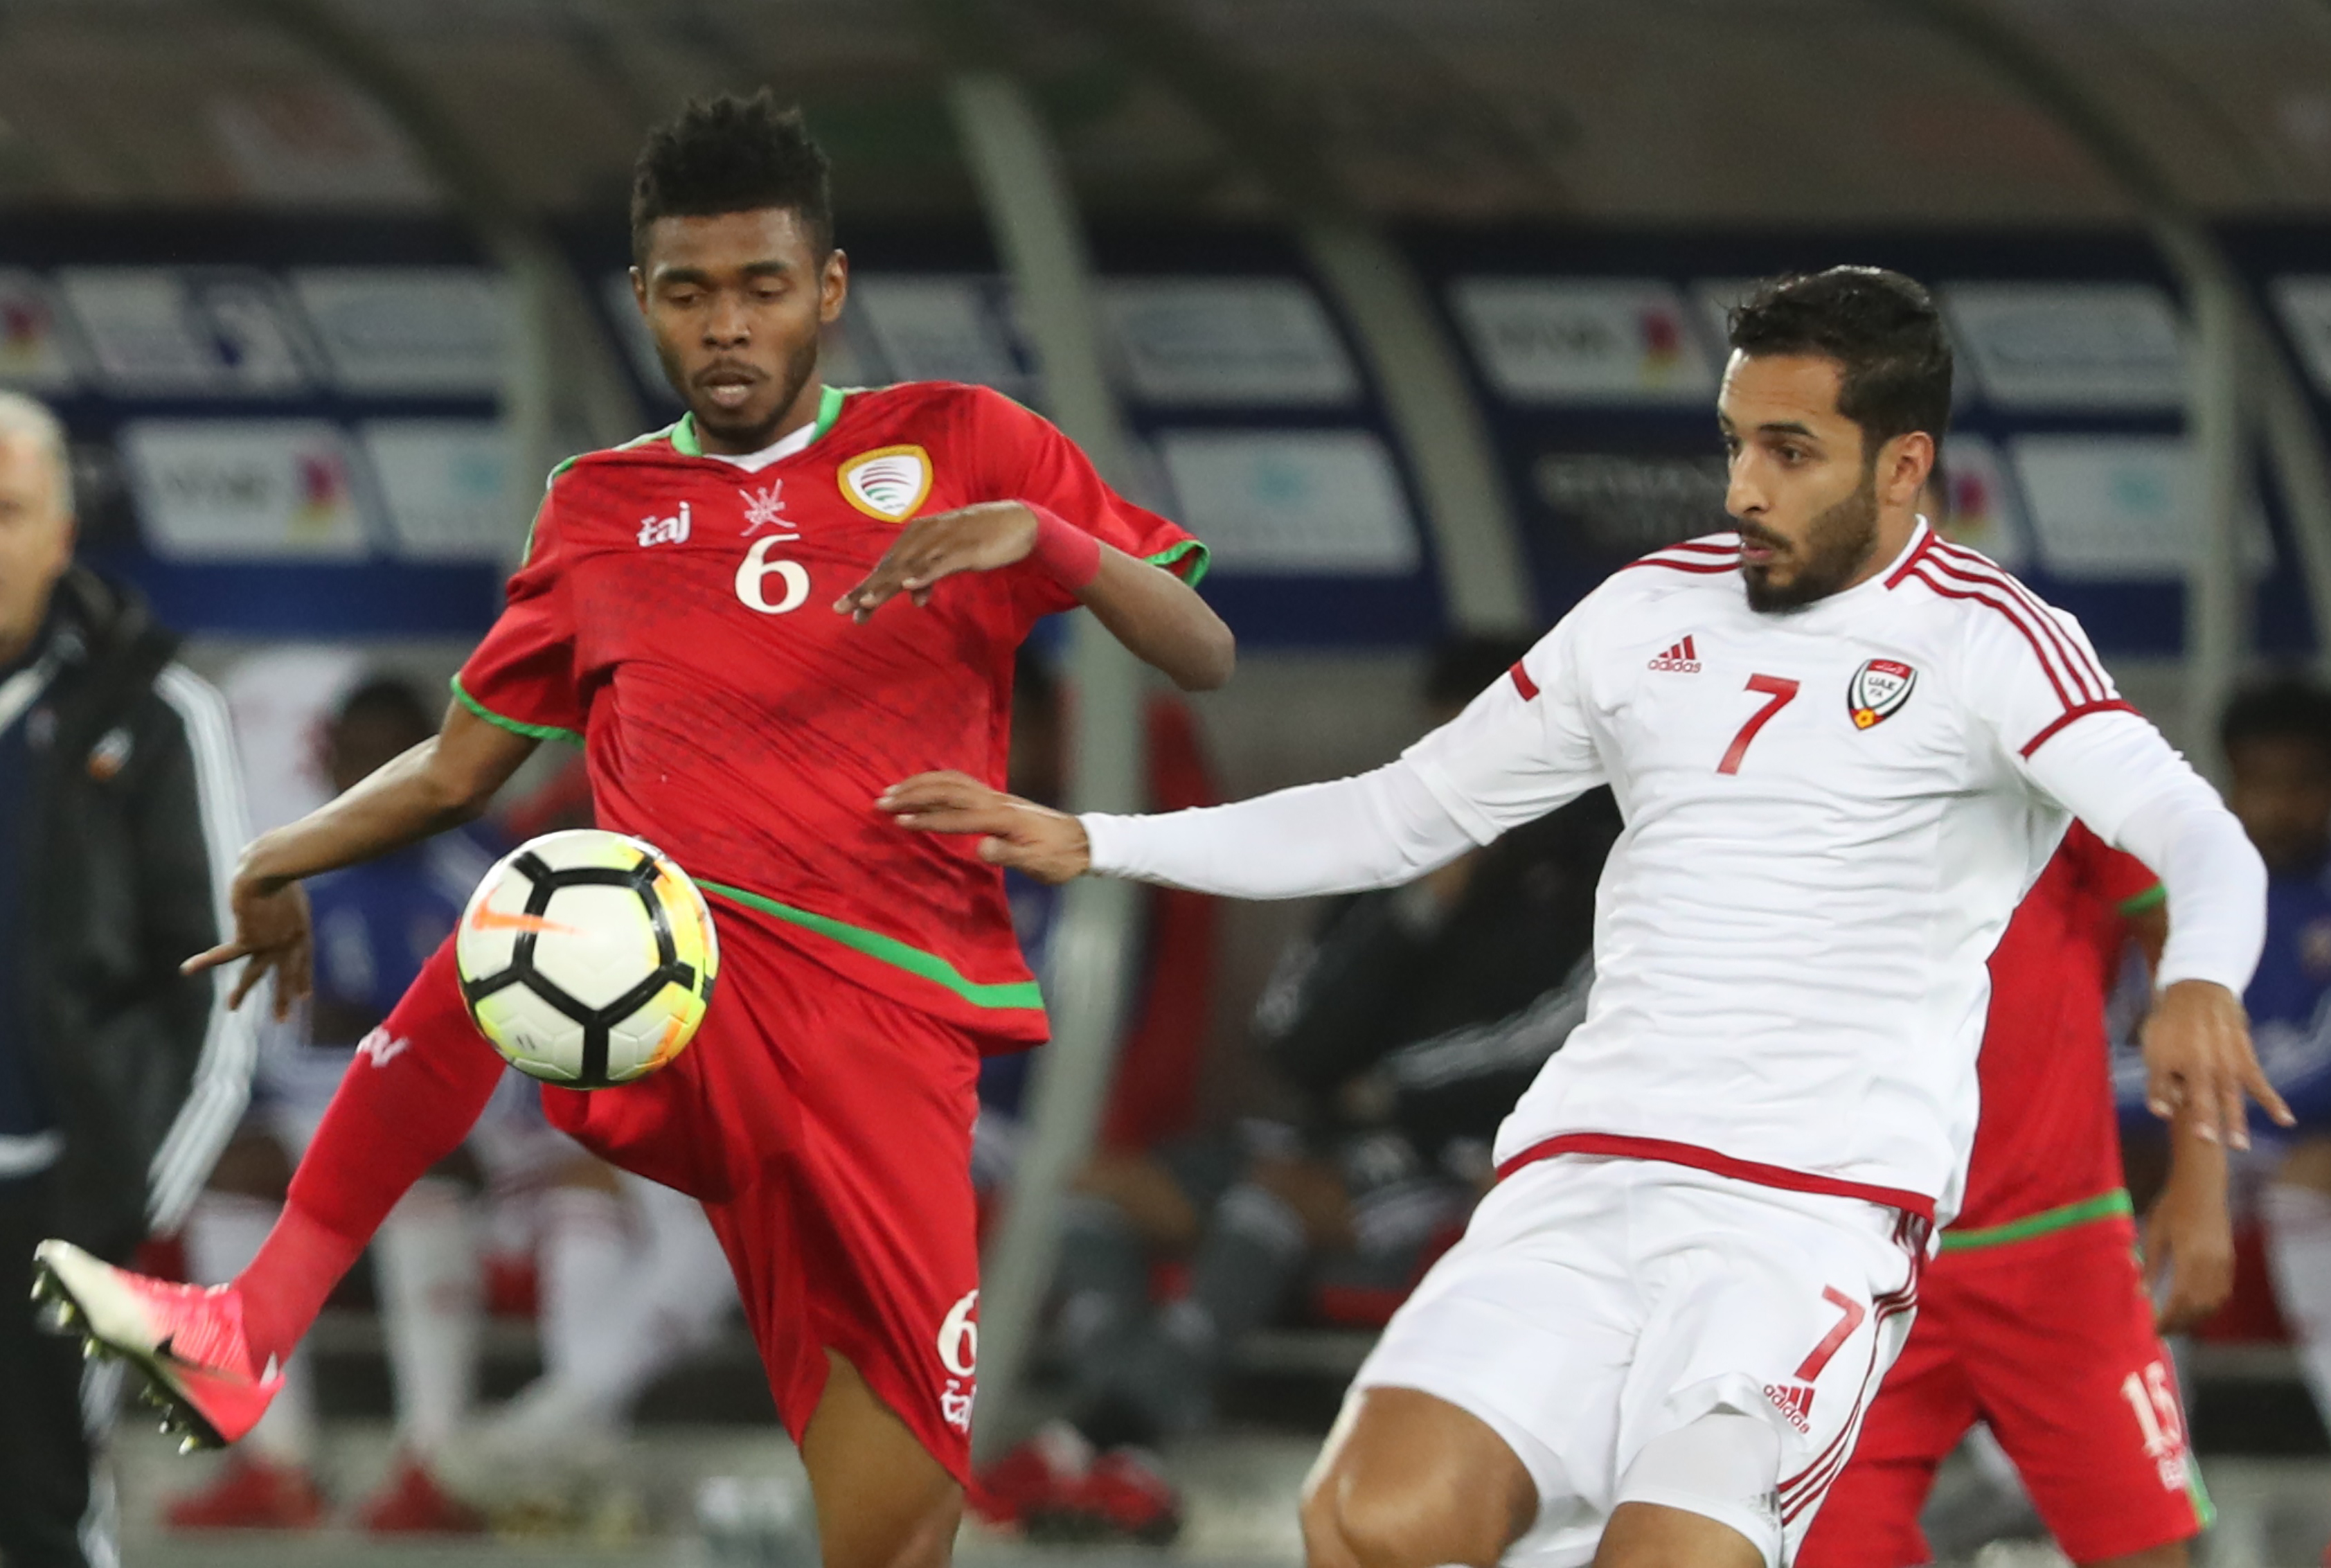 UAE striker Ali Mabkhout (r) struggled to unsettle the Oman defence.